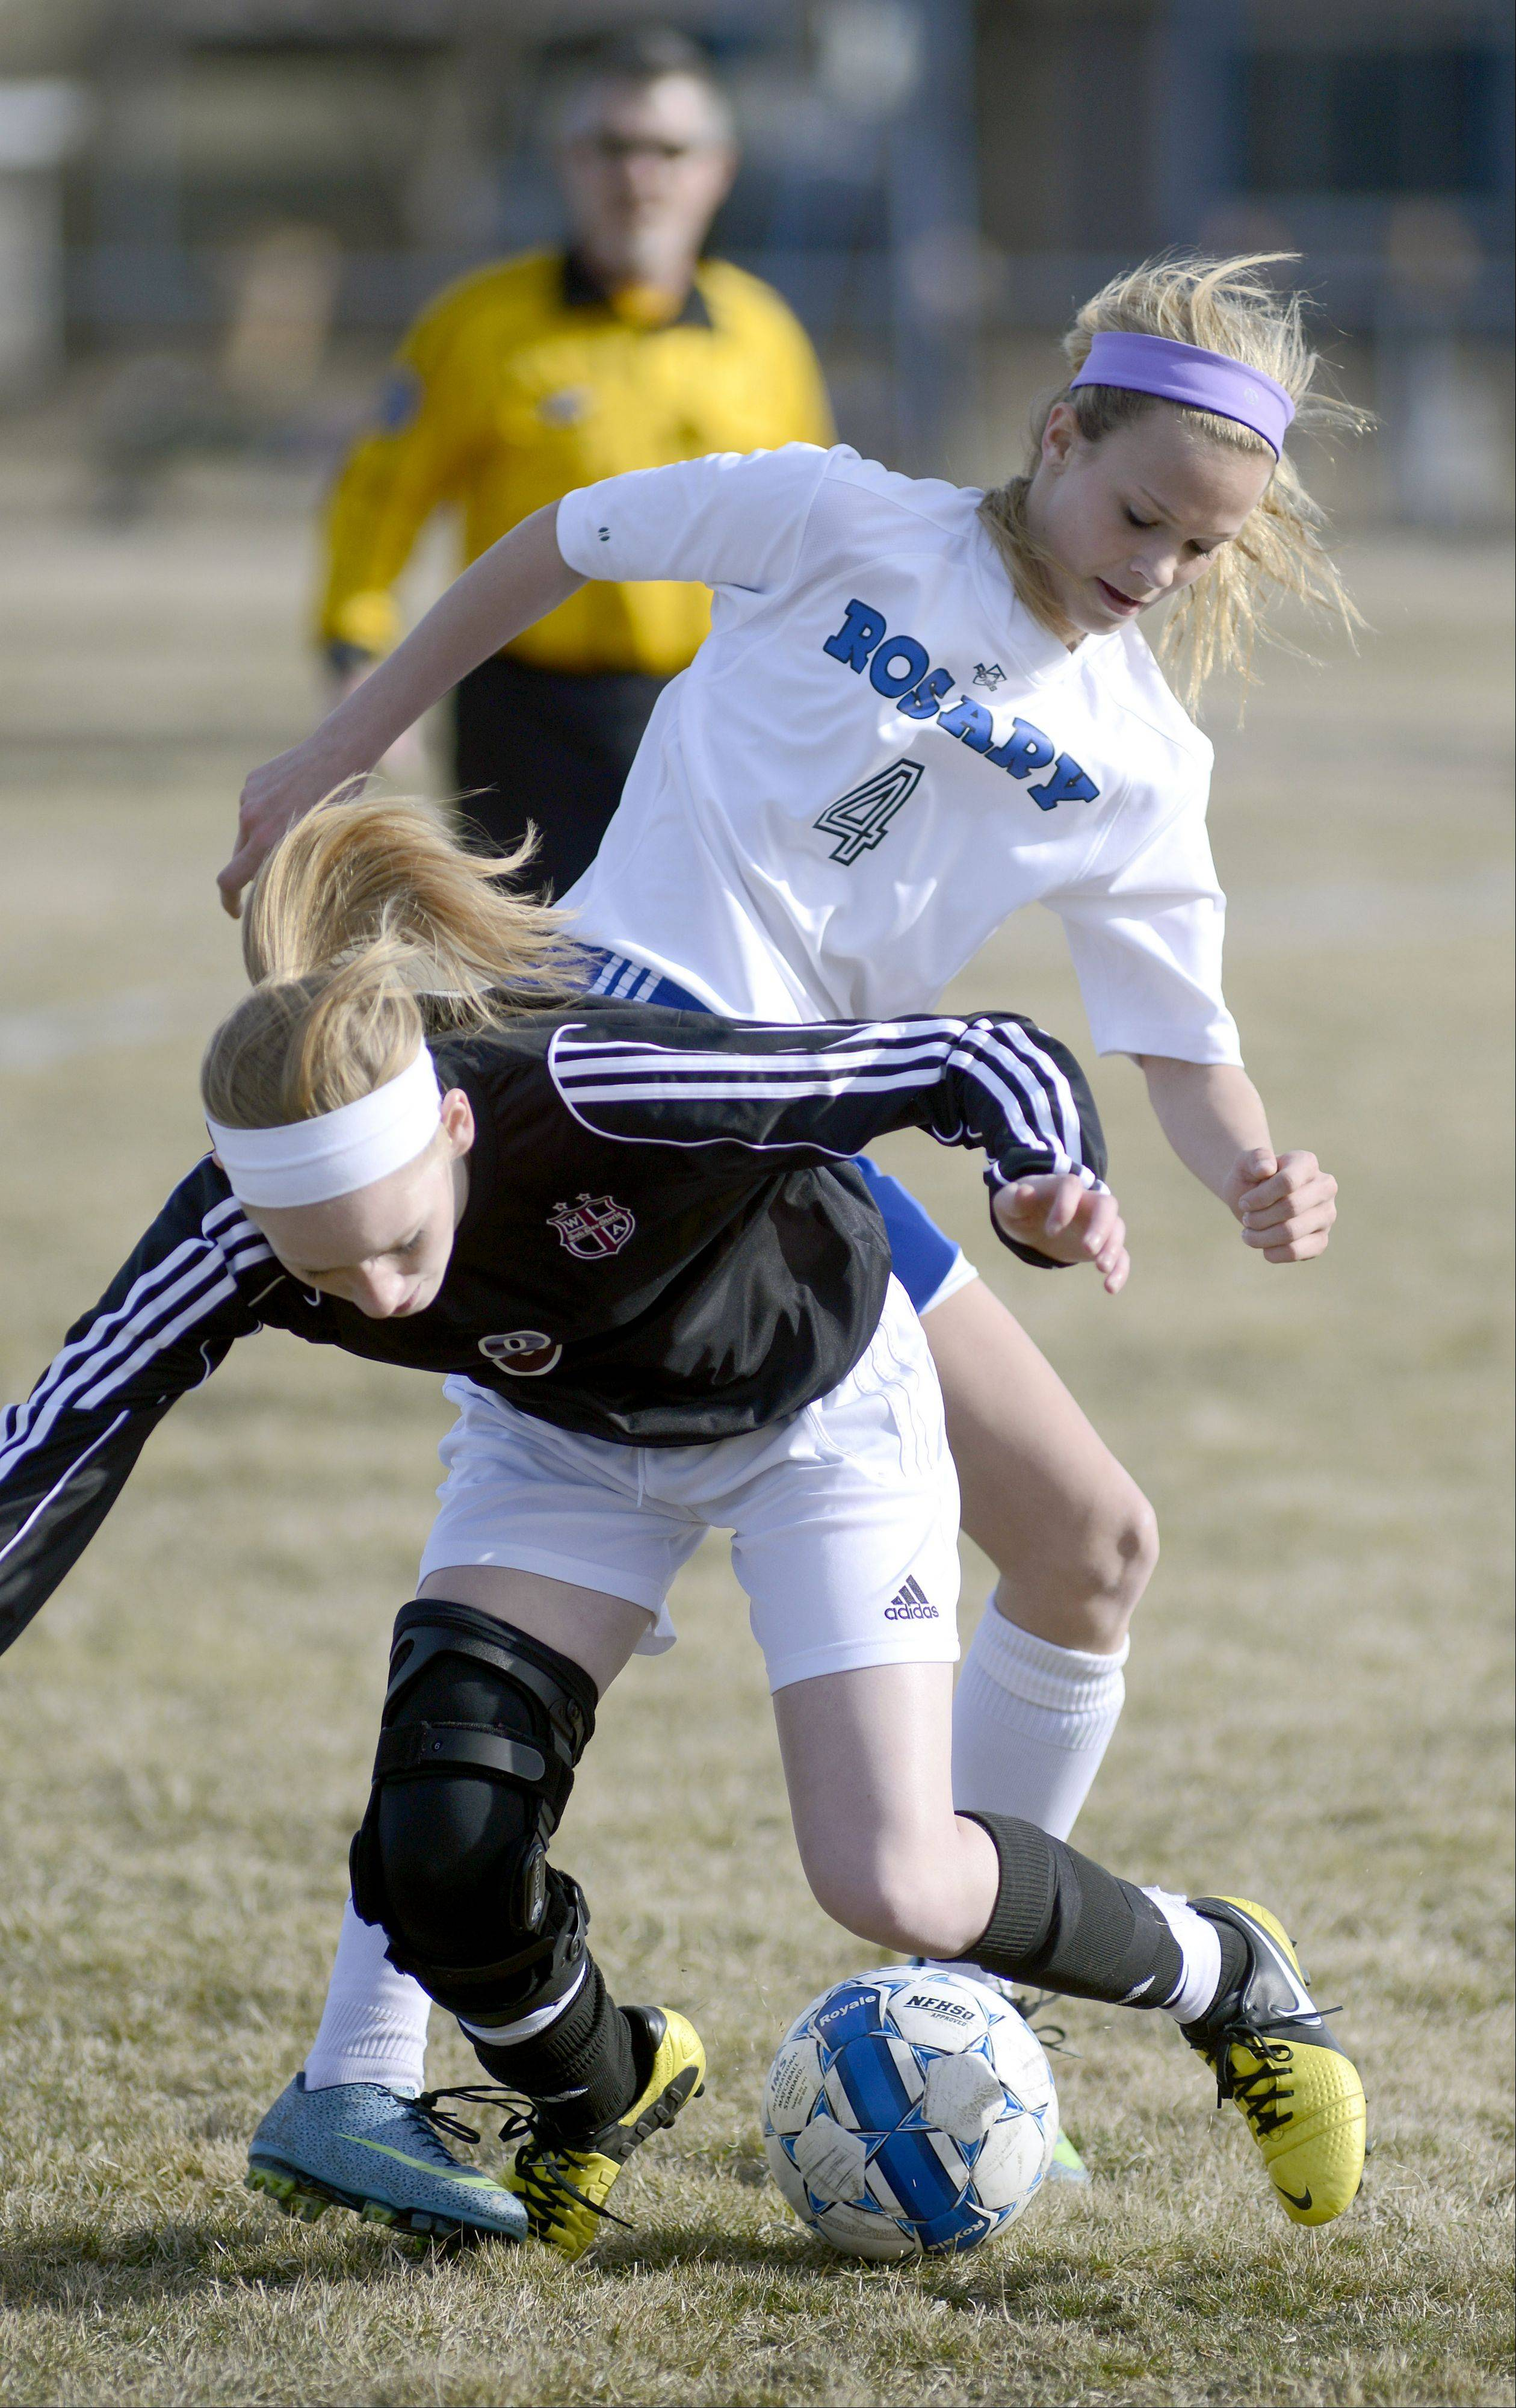 Wheaton Academy's Abbie Mercaldo tumbles to the ground after getting tangled with Rosary's Quincy Kellett in the first half on Wednesday, April 3.